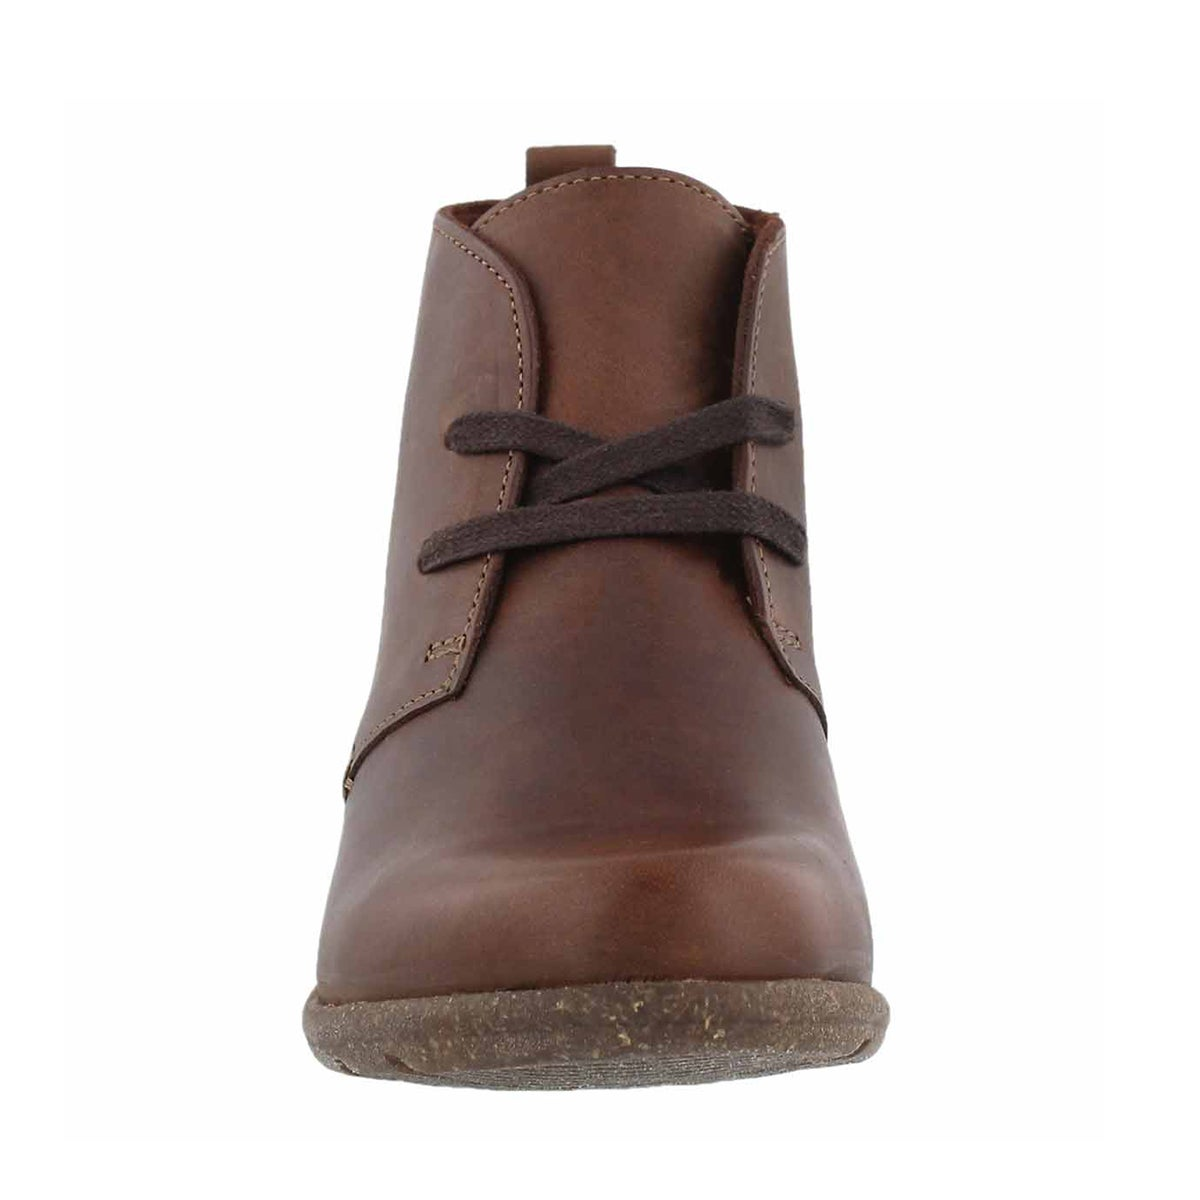 Lds Wilrose Sage brn lace up bootie